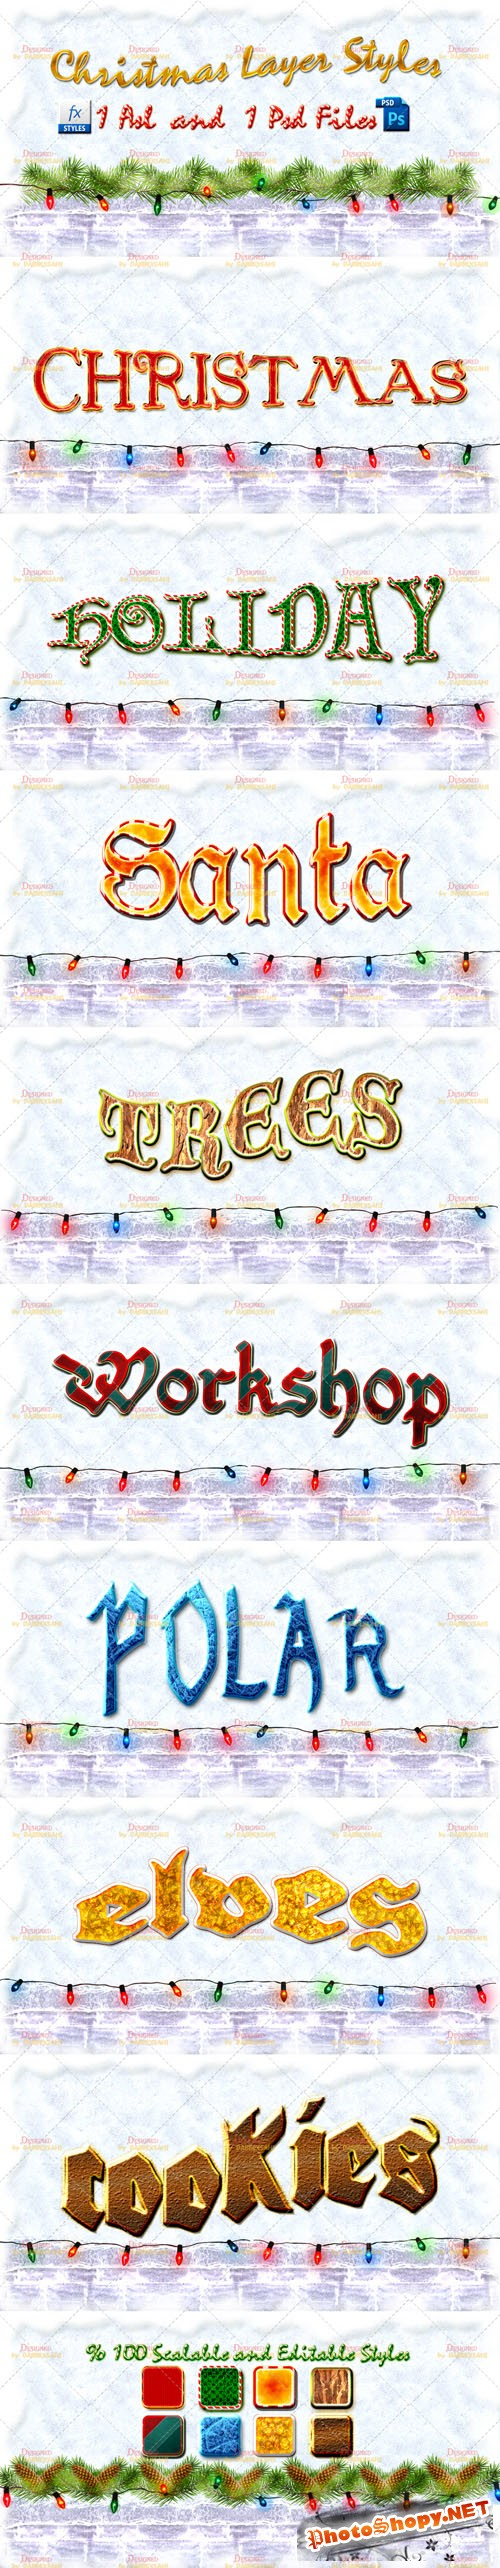 Christmas Photoshop Layer Styles